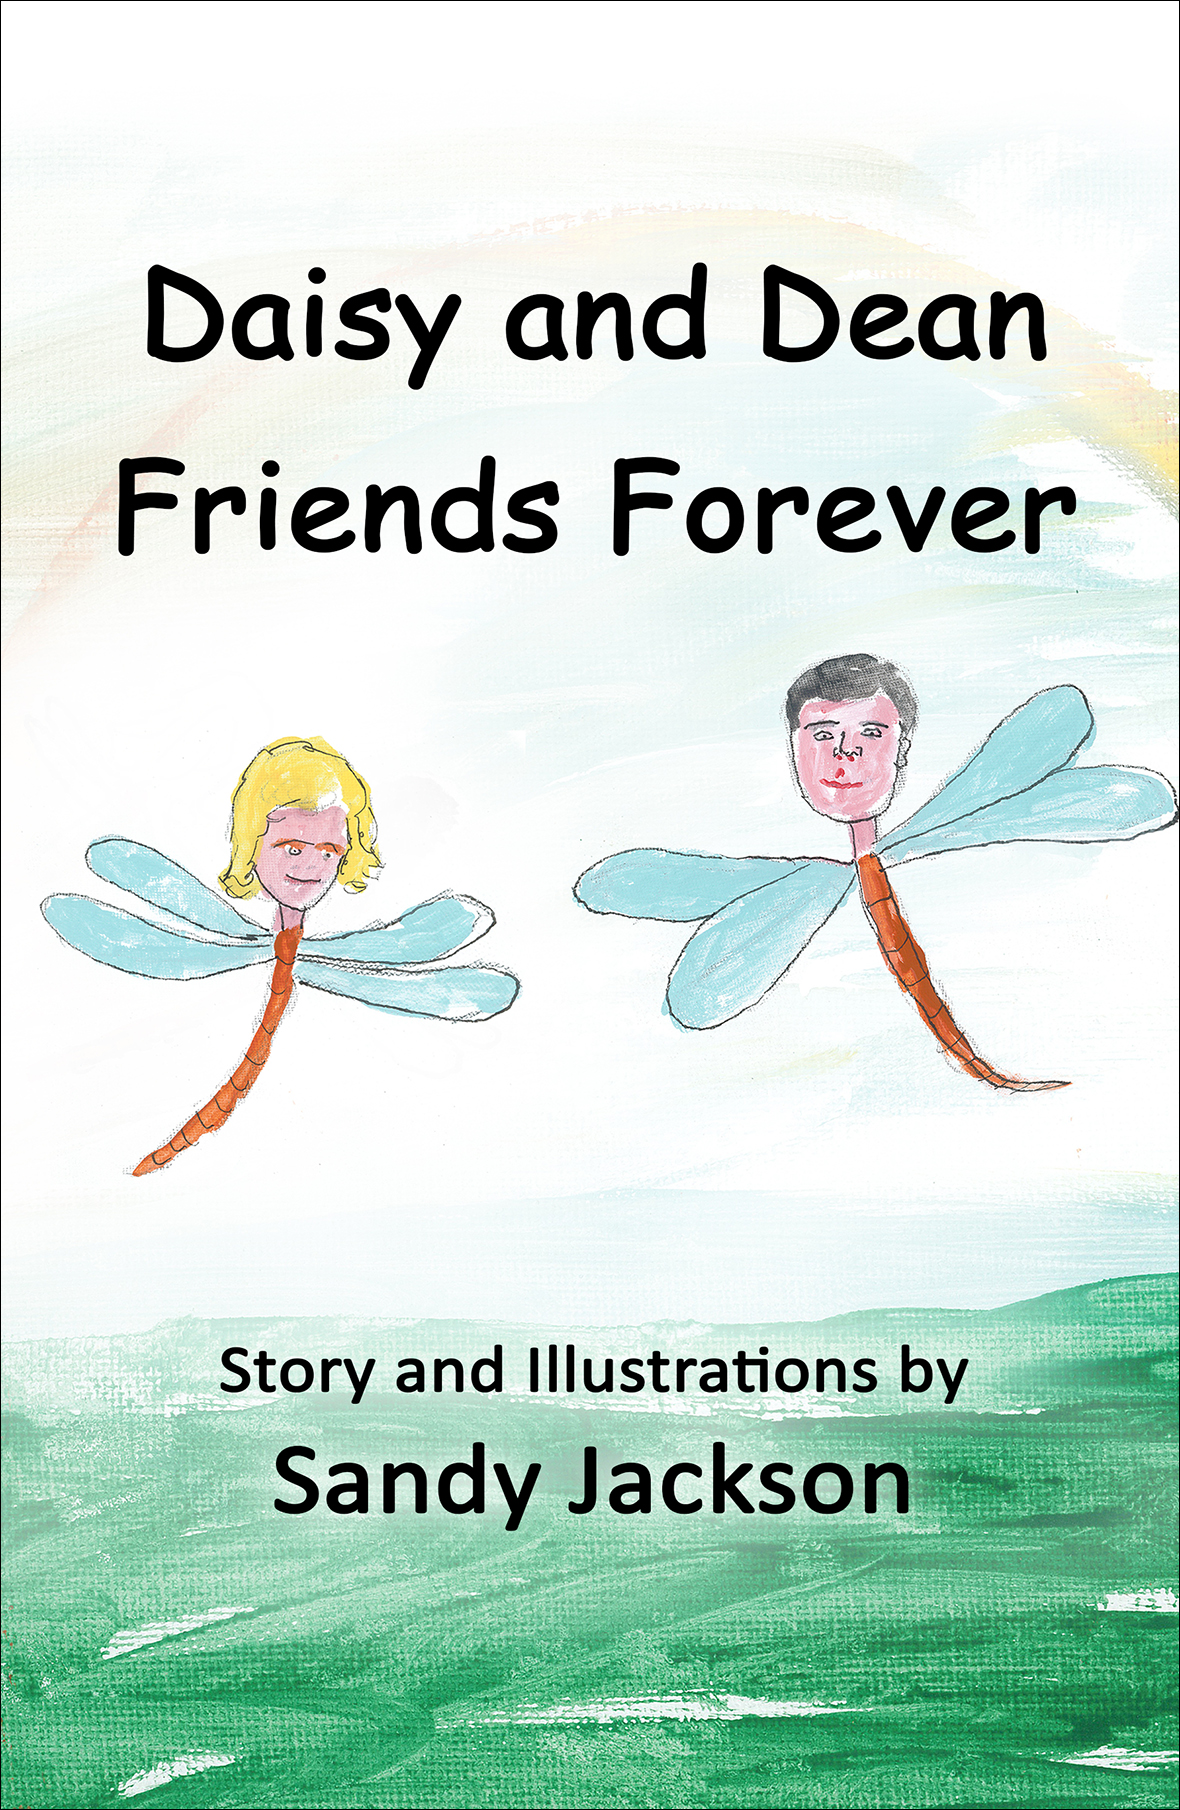 Daisy and Dean Front Cover for Web Insertion